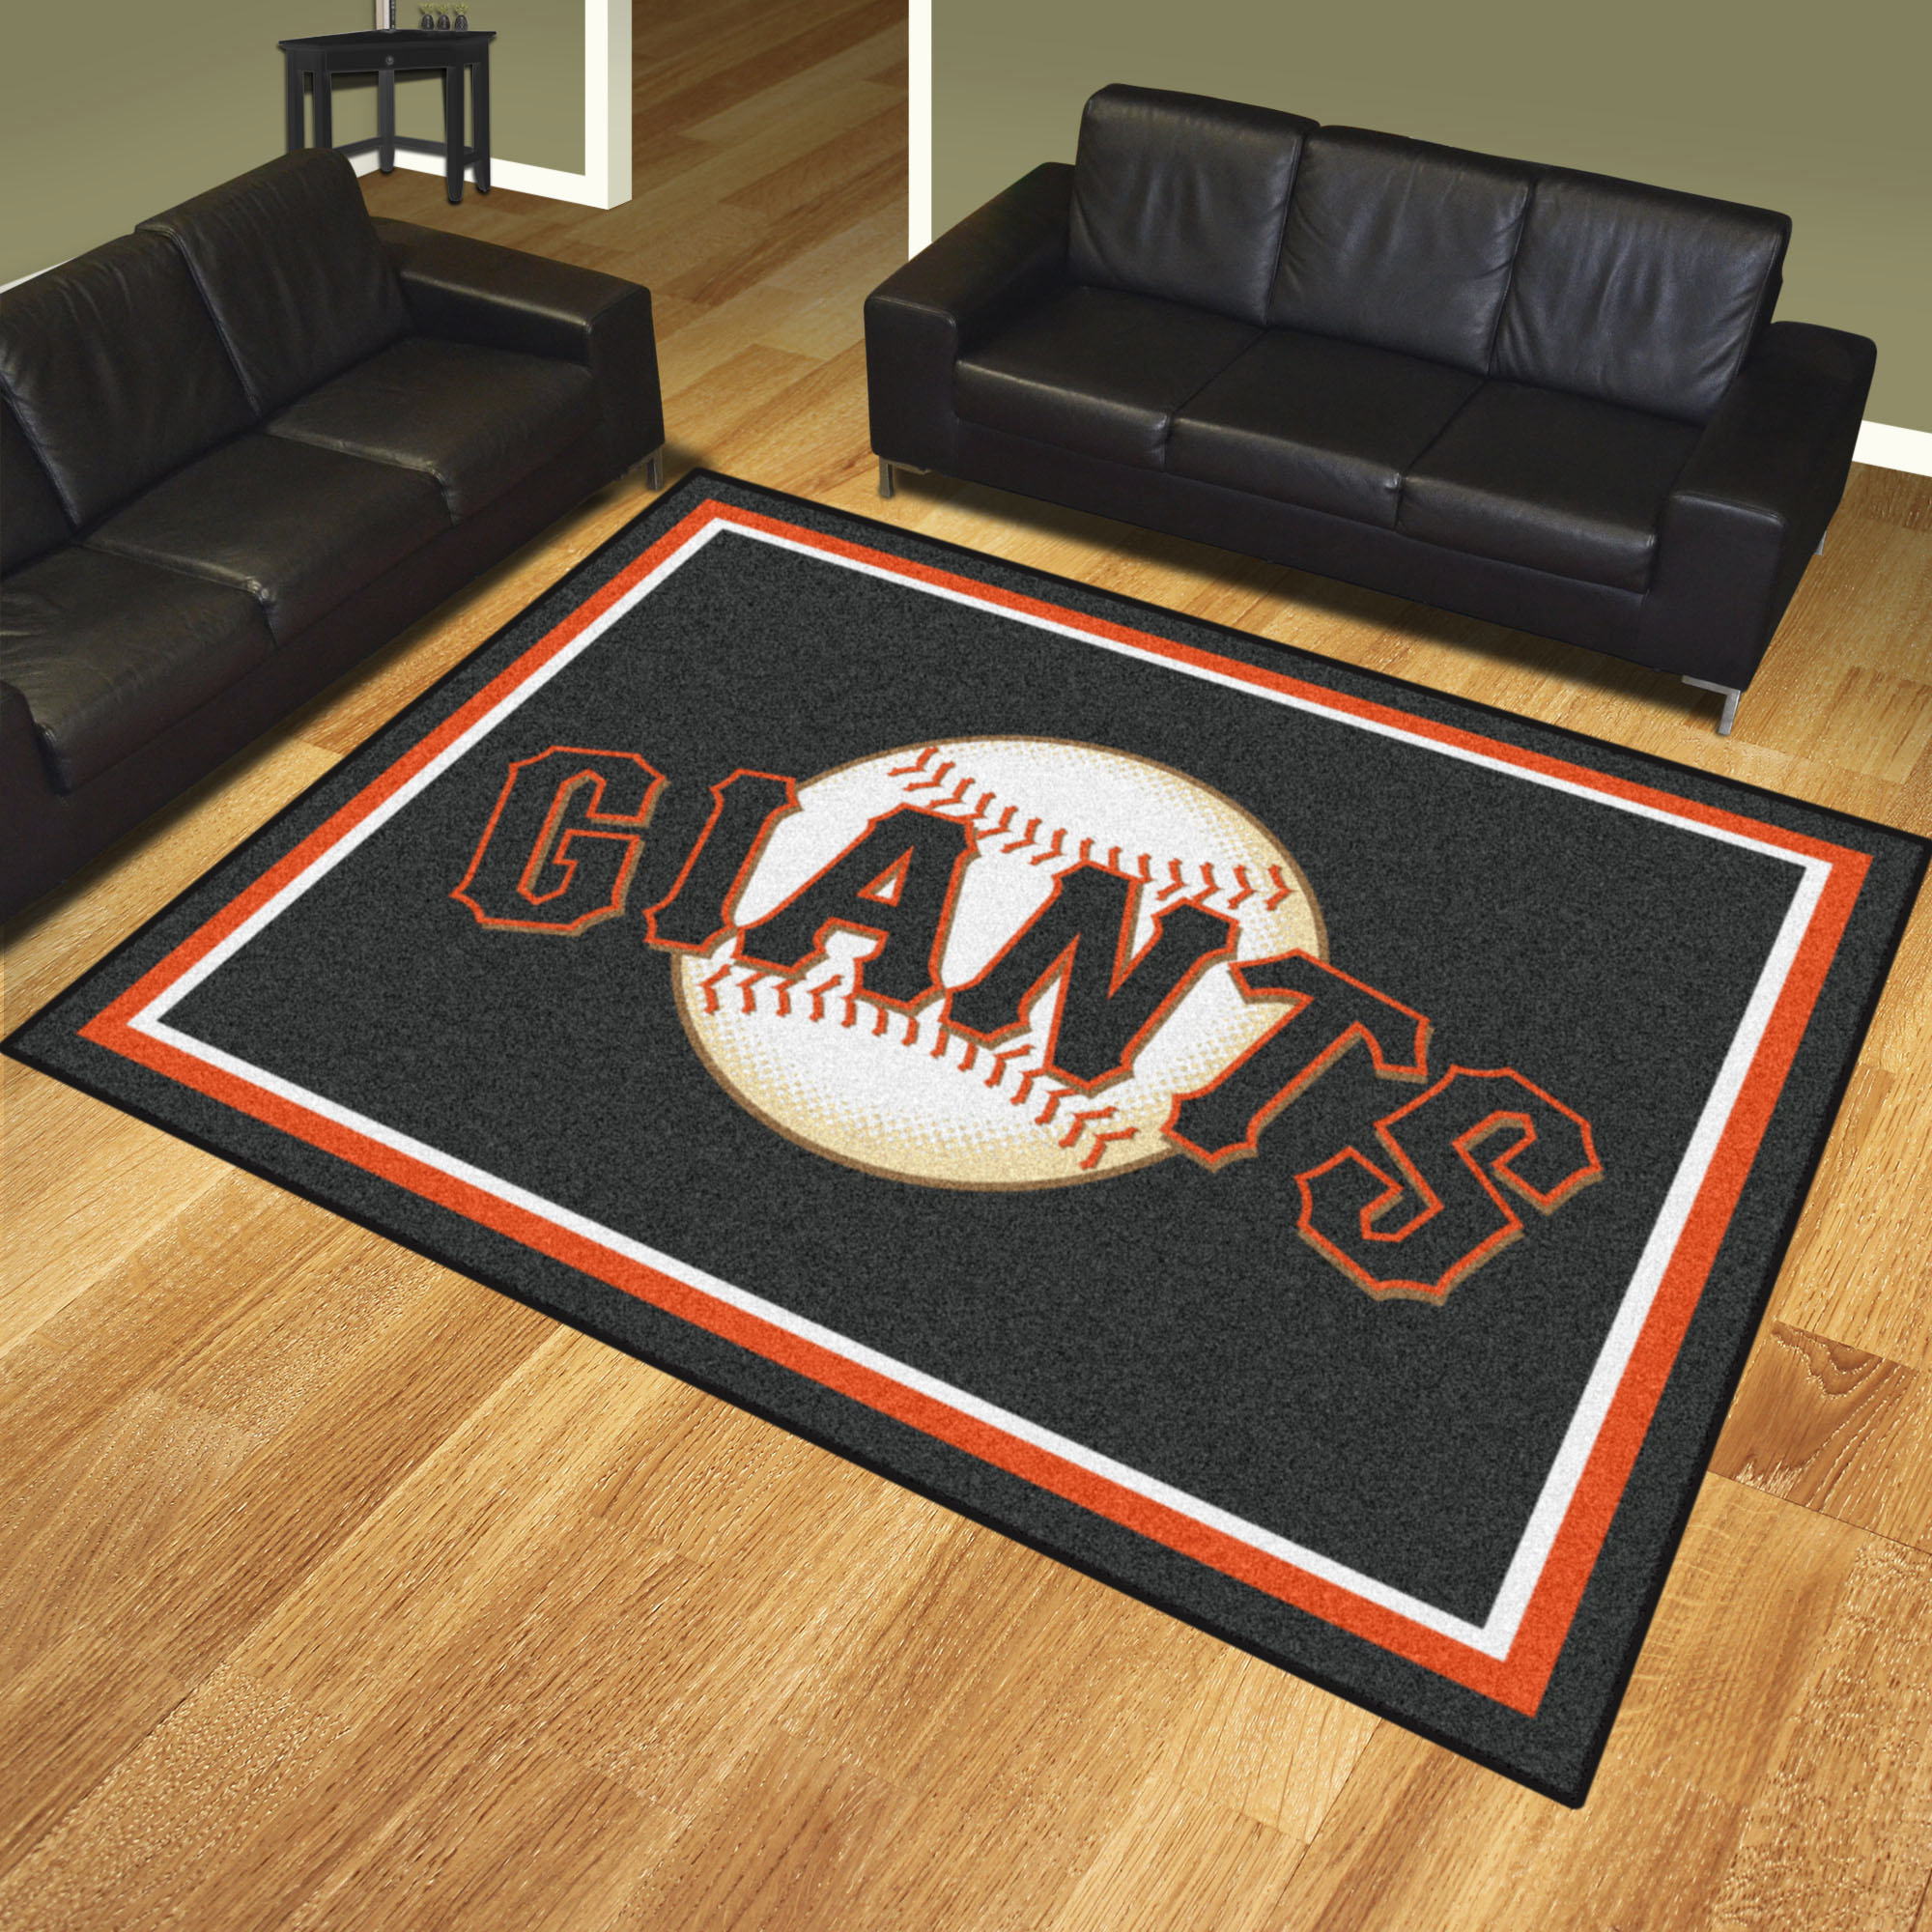 San Francisco Giants Ultra Plush 8x10 Area Rug